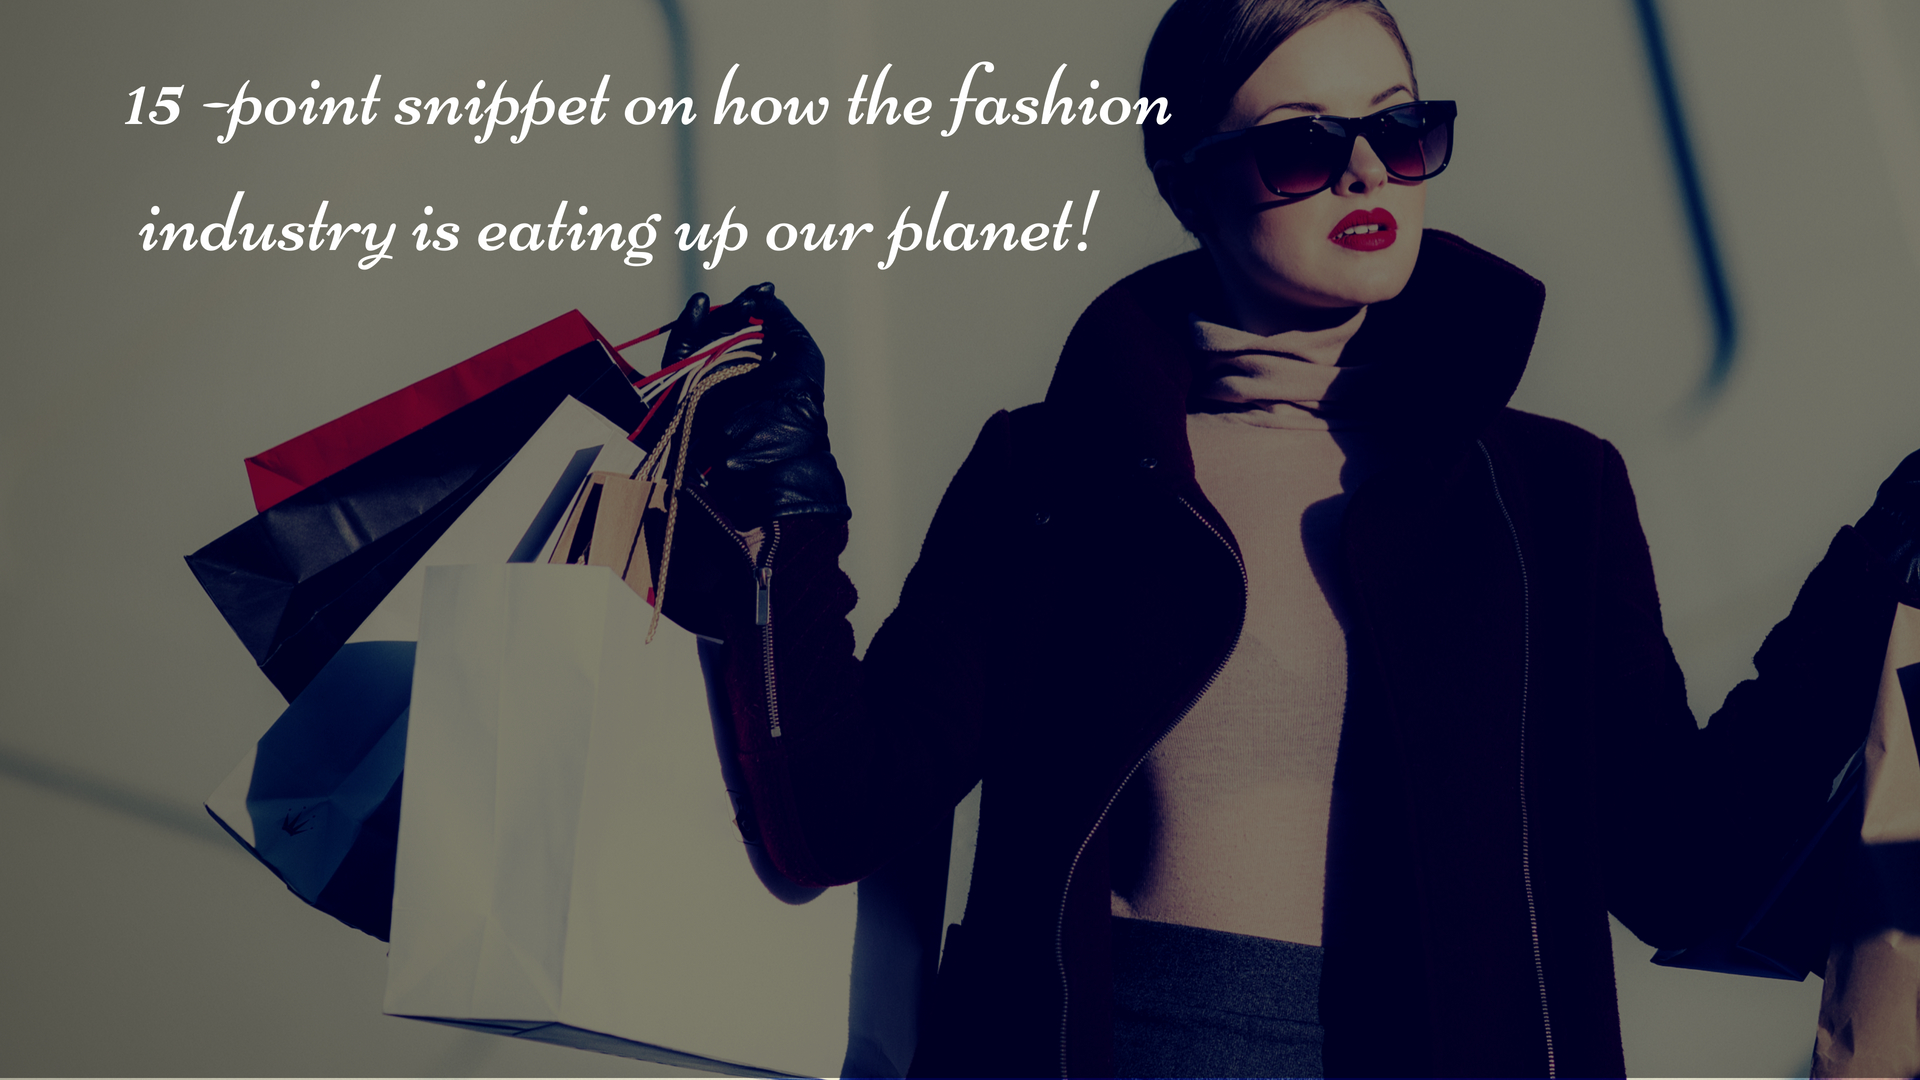 15 Ways the Fashion Industry is Eating Up Our Planet!